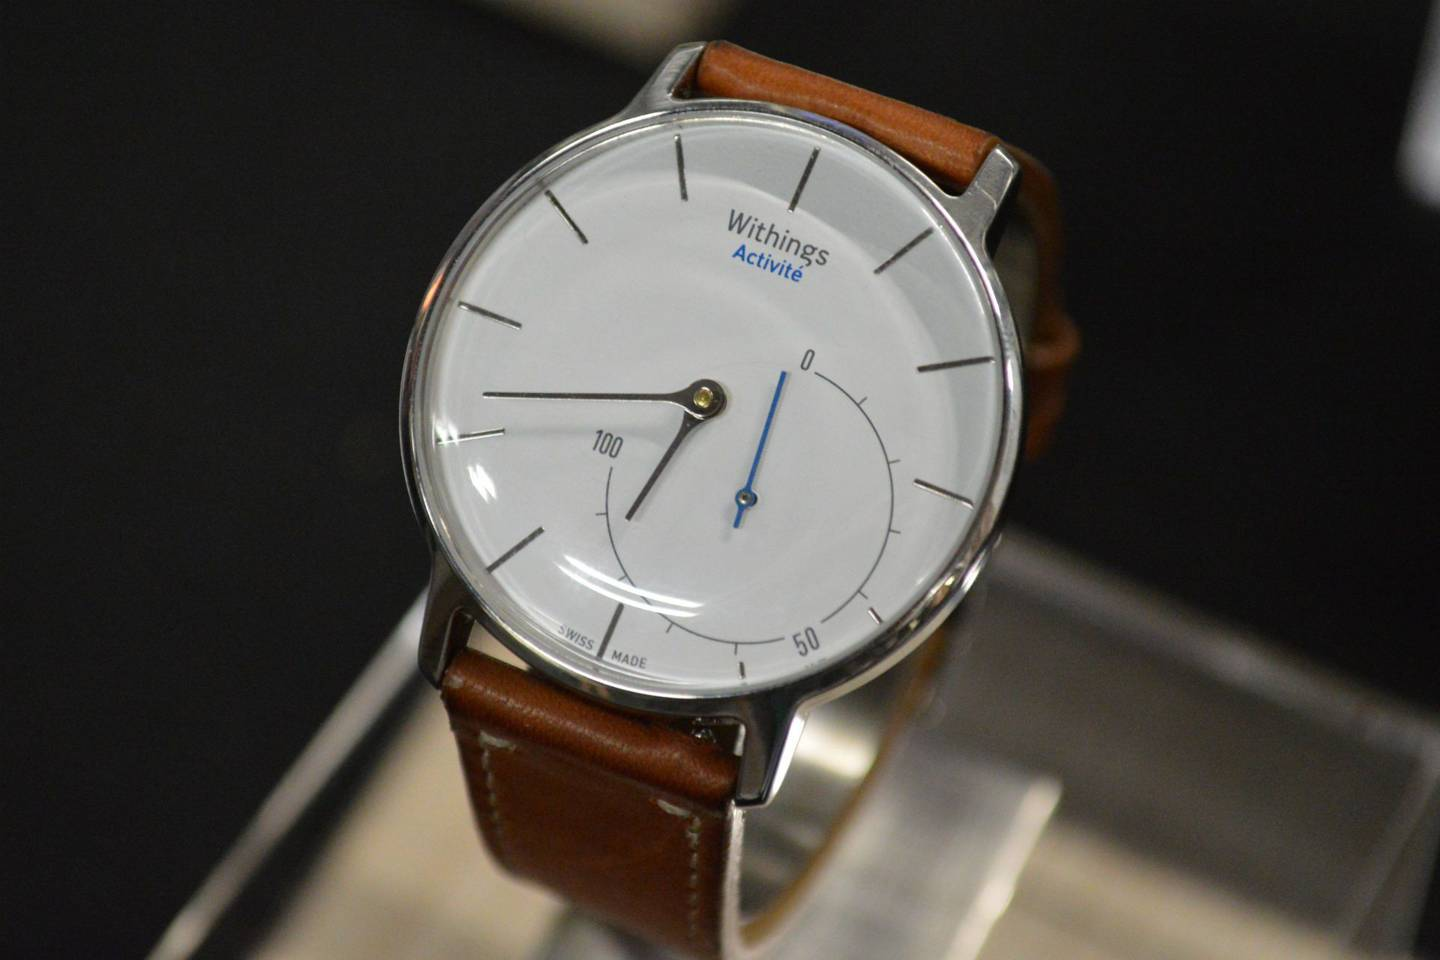 Nokia to buy smartwatch firm Withings for £131m